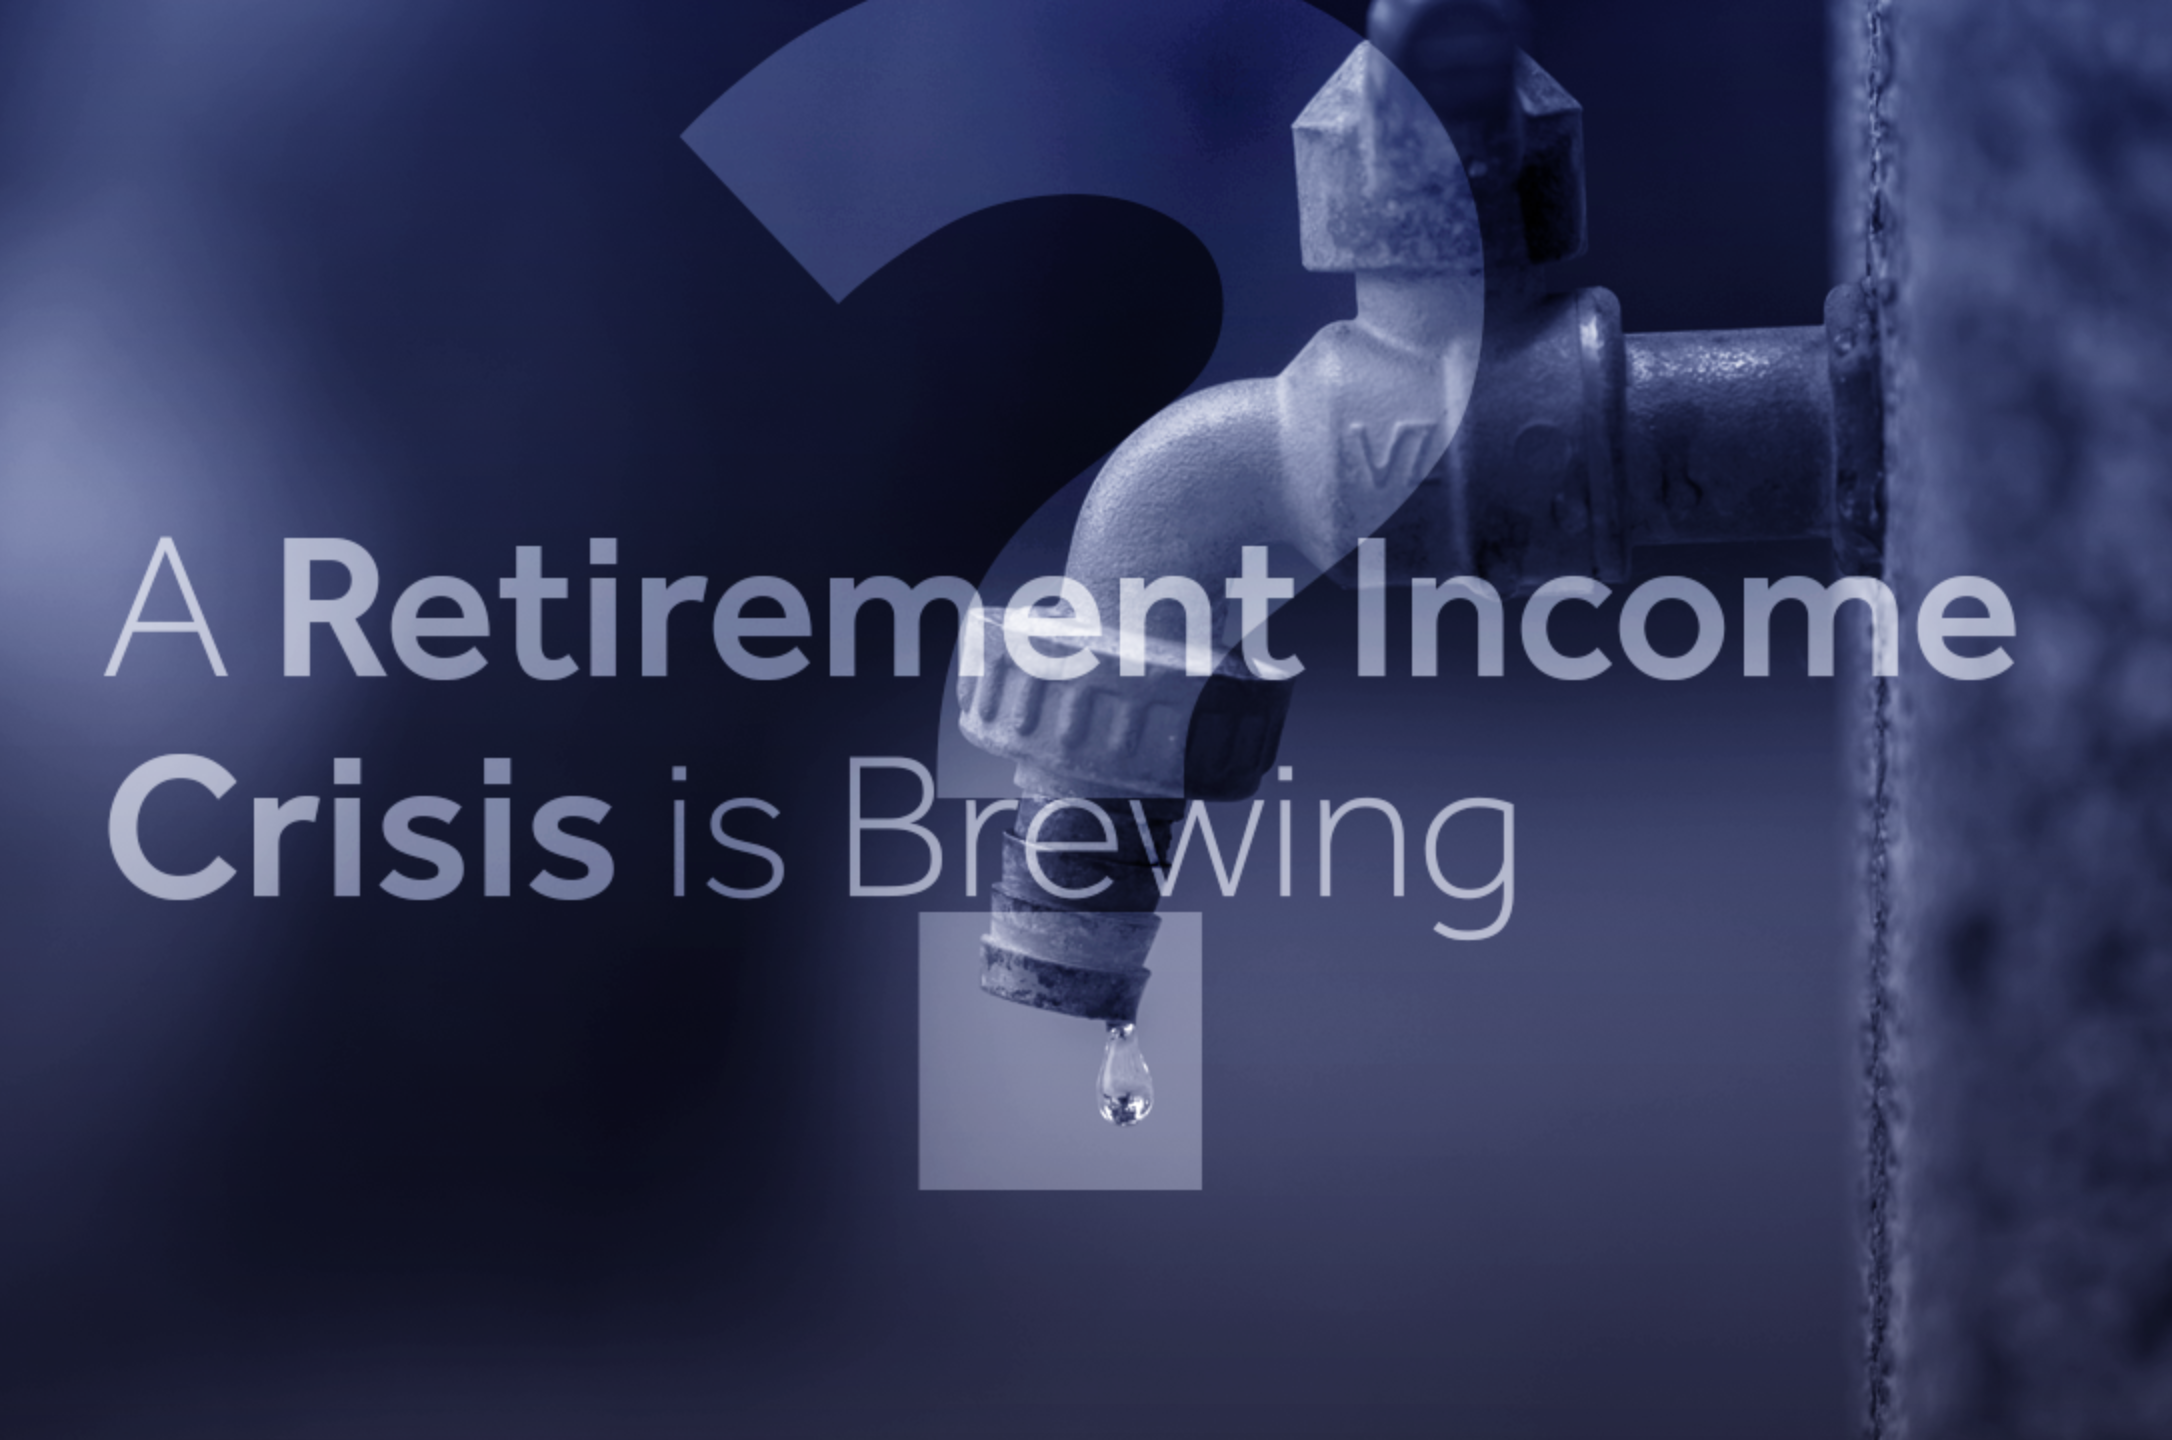 A Retirement Income Crisis is Brewing